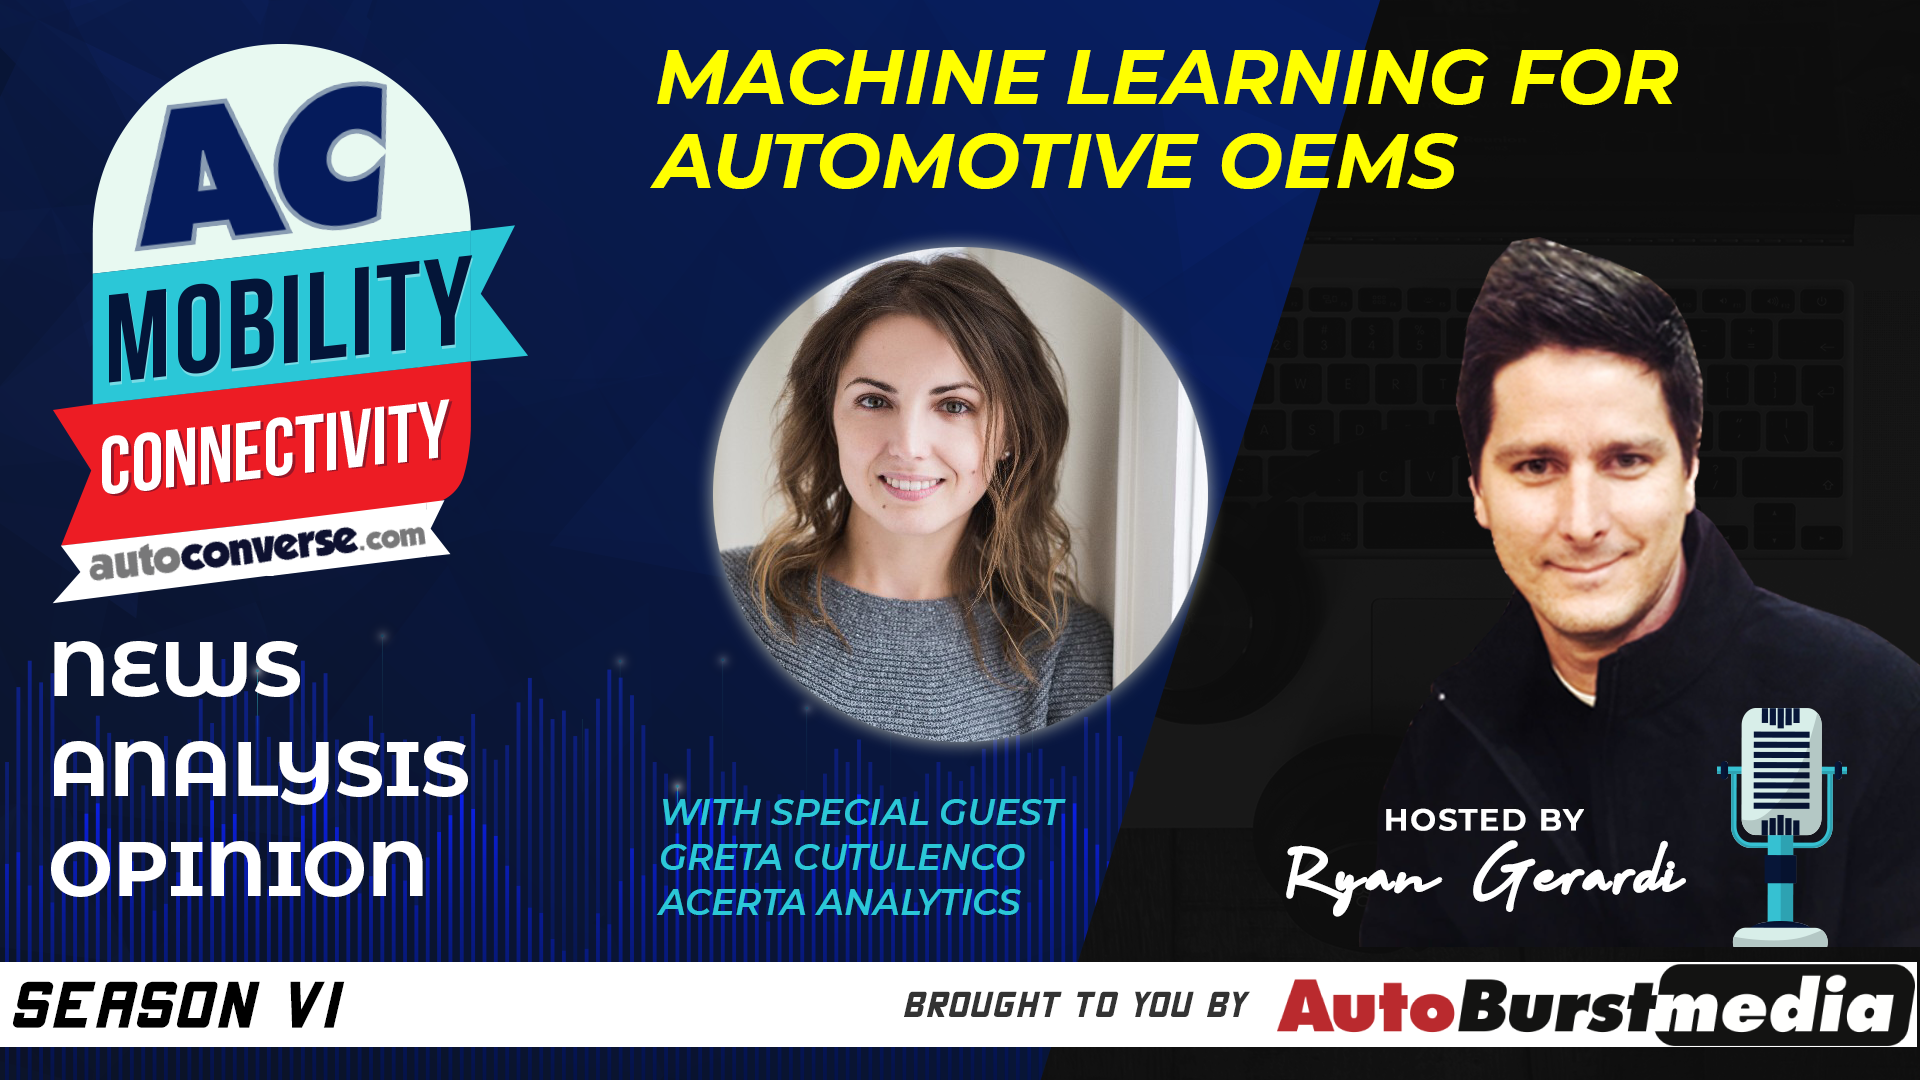 WED MAR 18. Biggest Challenge in Machine Learning for Engines. Conversation with Greta Cutulenco, Acerta Analytics